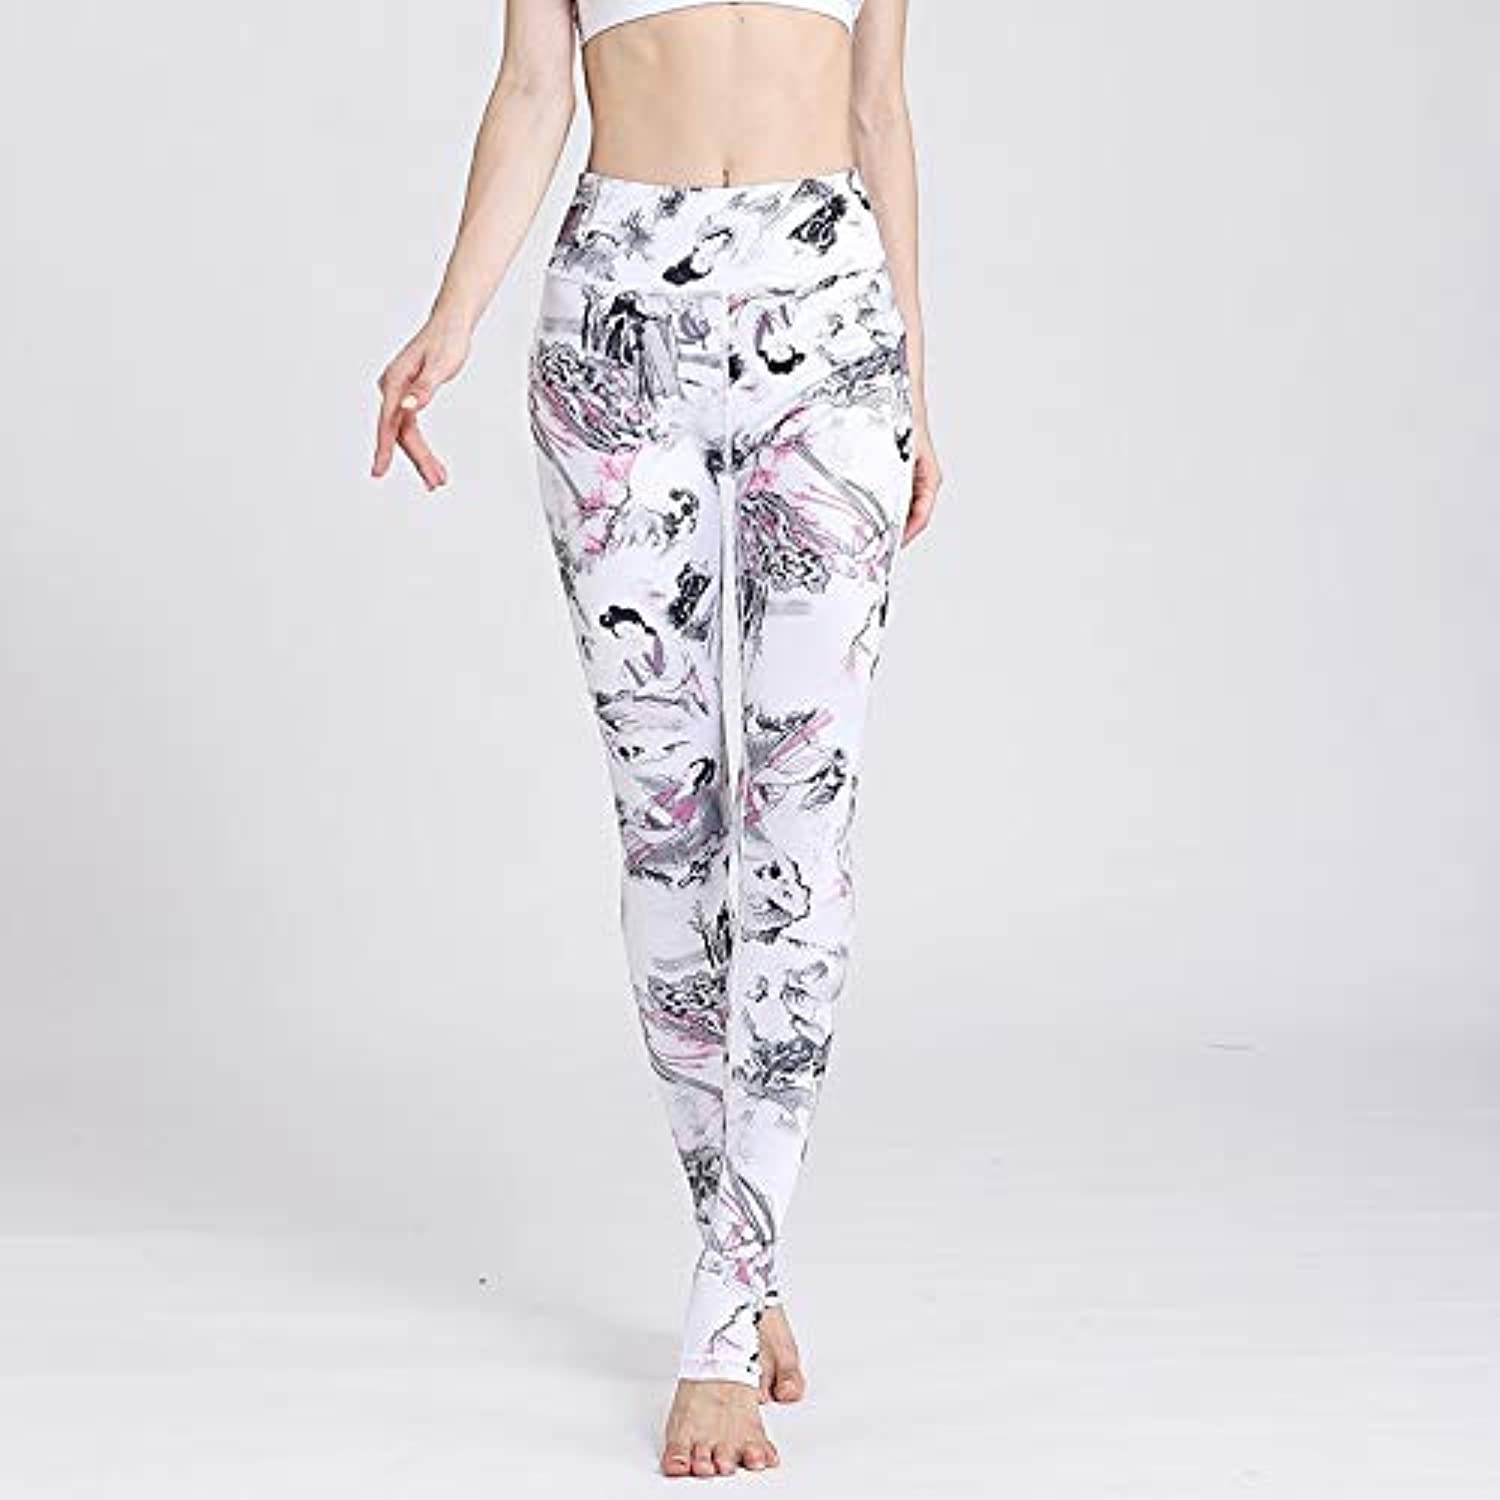 YJKJSK New Yoga Pants Women Sports Tall Waist Stretched Gym Clothes Spandex Running Tights Women Sports Leggings Fitness